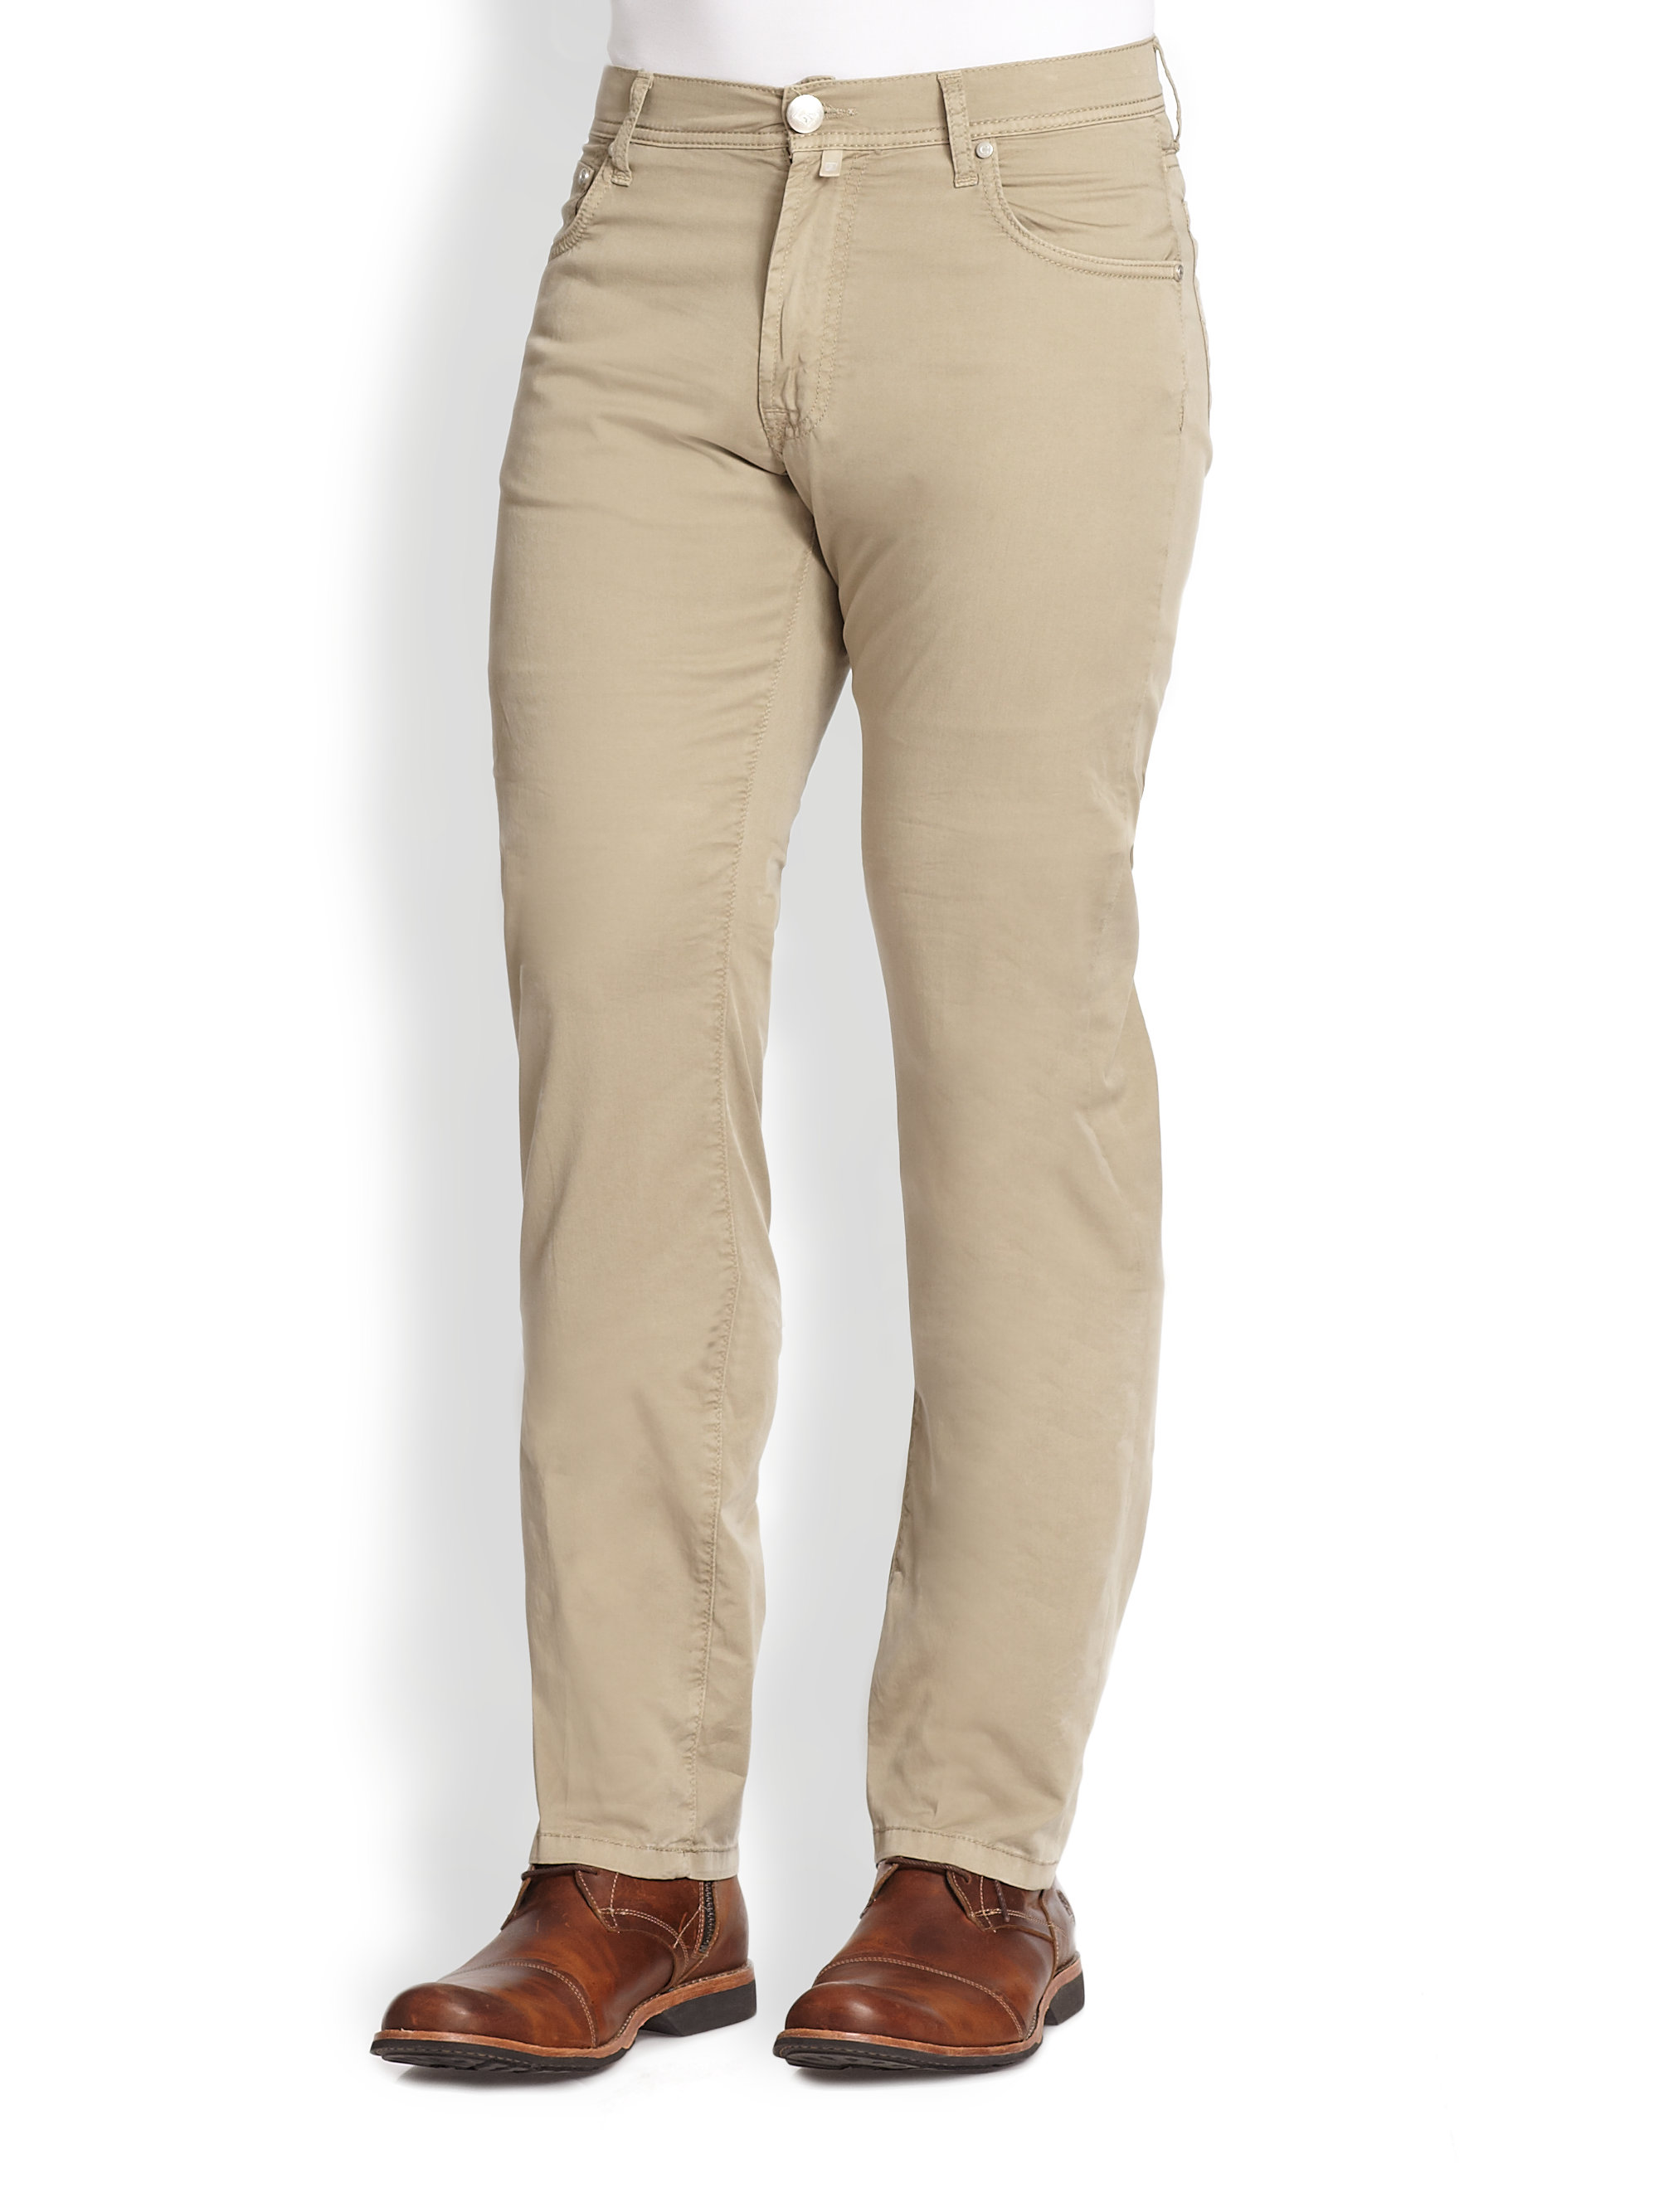 Stuccu: Best Deals on light beige pants. Up To 70% offBest Offers · Exclusive Deals · Lowest Prices · Compare Prices.